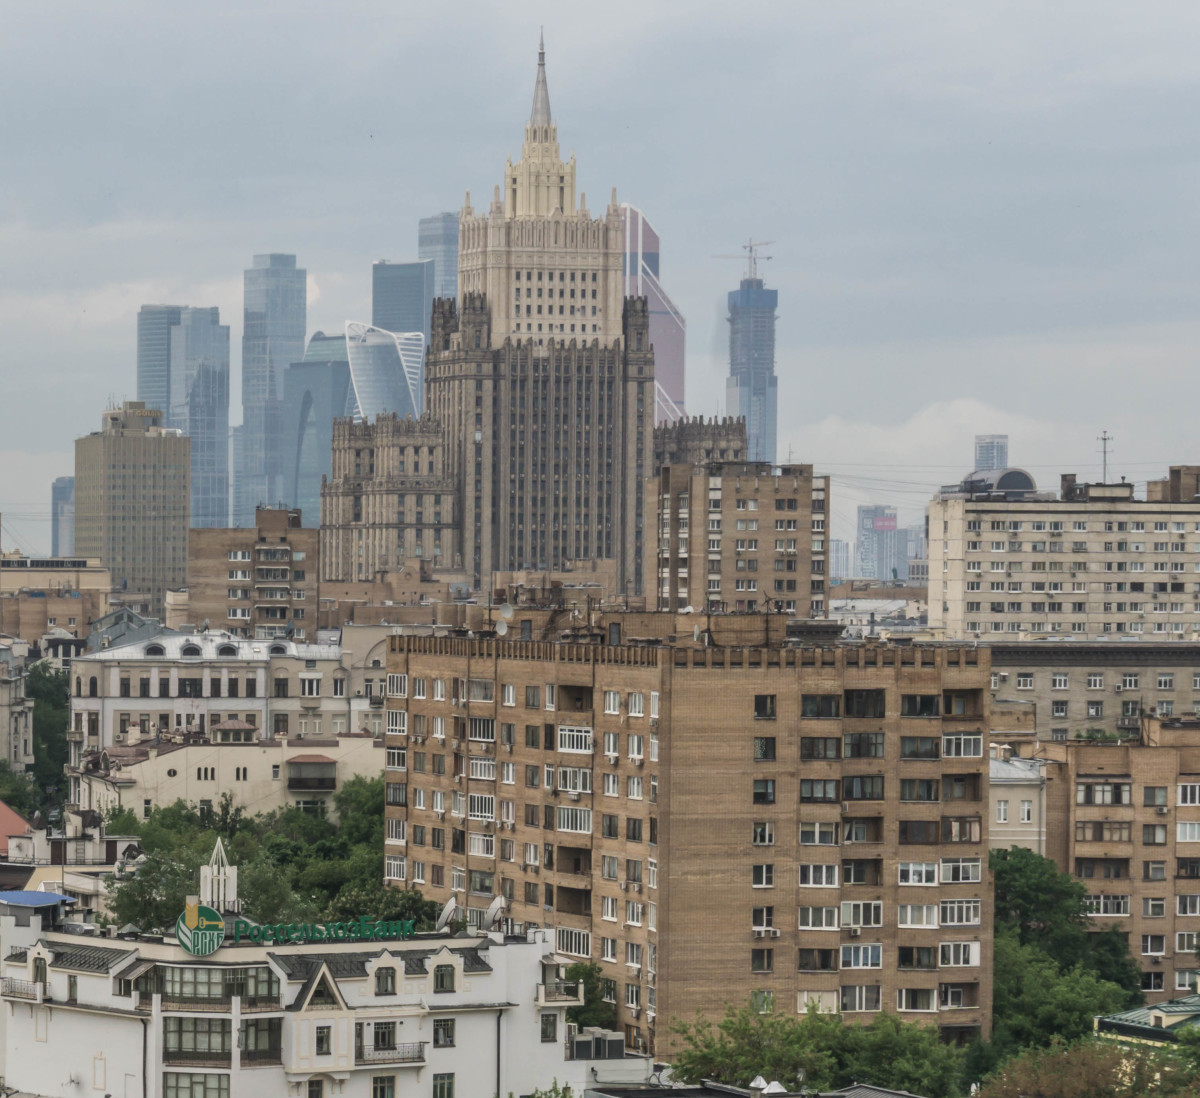 The Moscow Skyline including the tallest Skyscrapers in Europe at the International Business Centre.